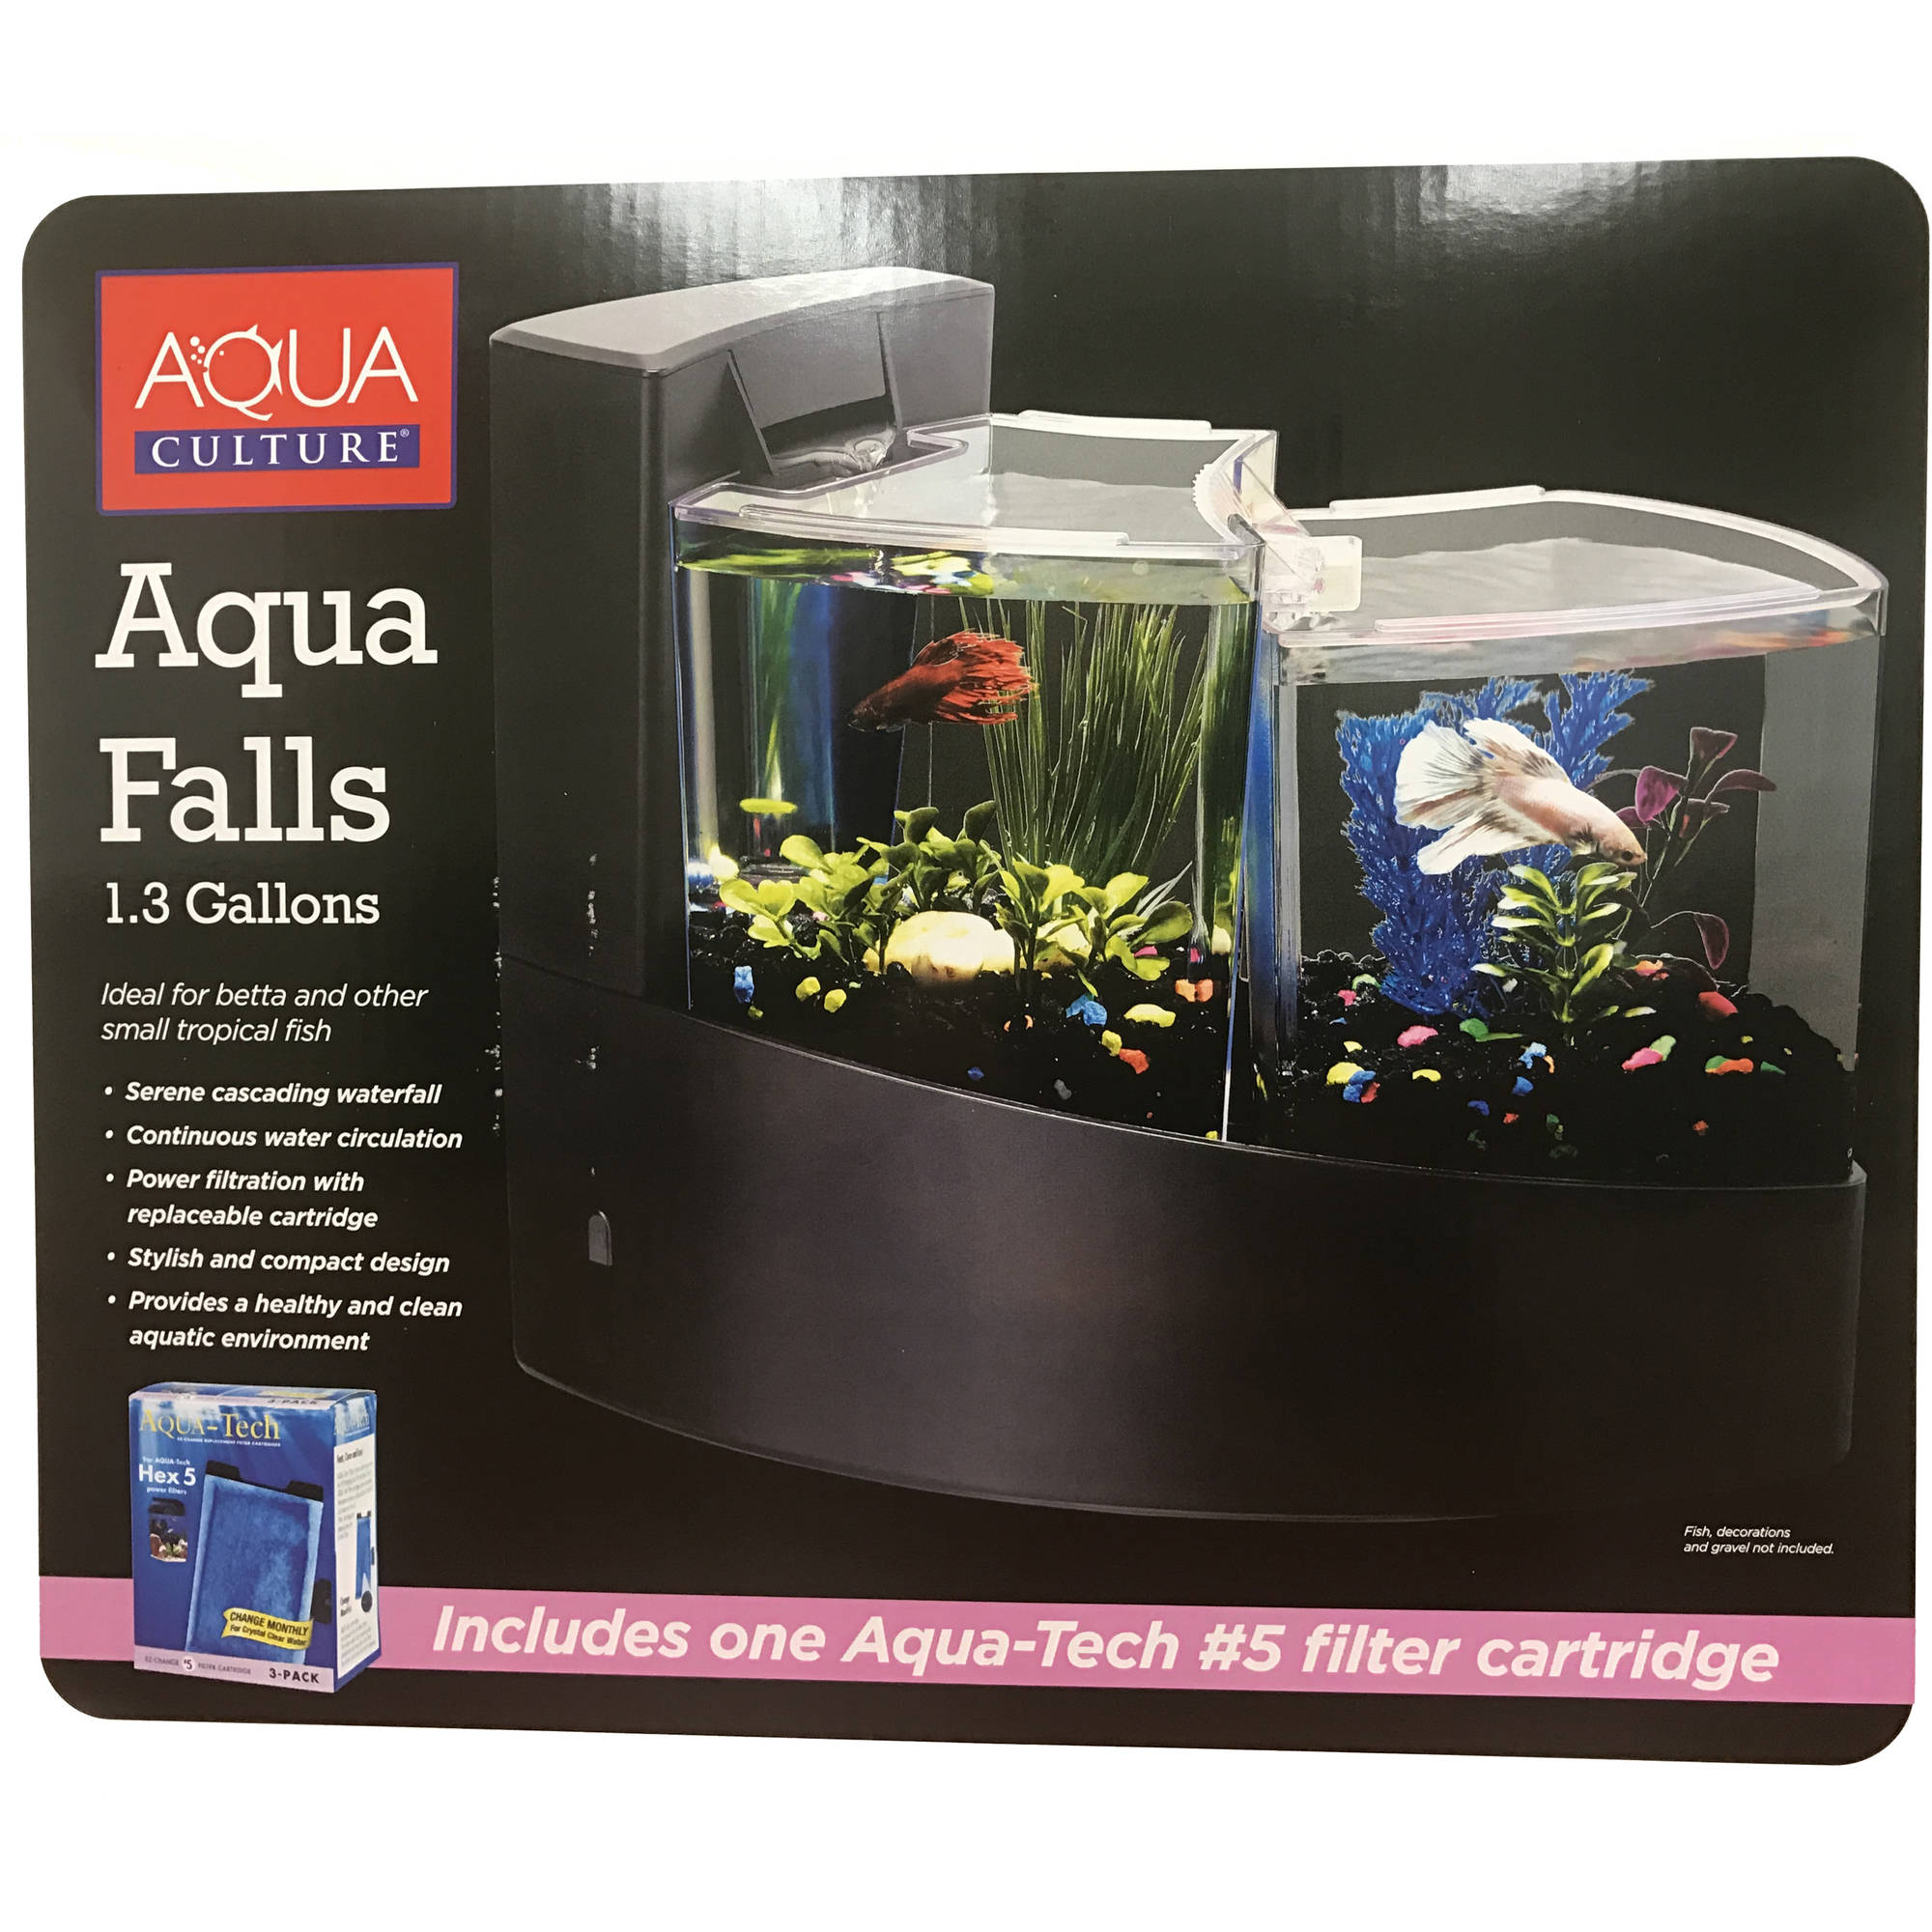 Aqua Culture Aqua Falls Betta Fish Aquarium Kit, 1.3-Gallon by Jewelry Sizing & Repair